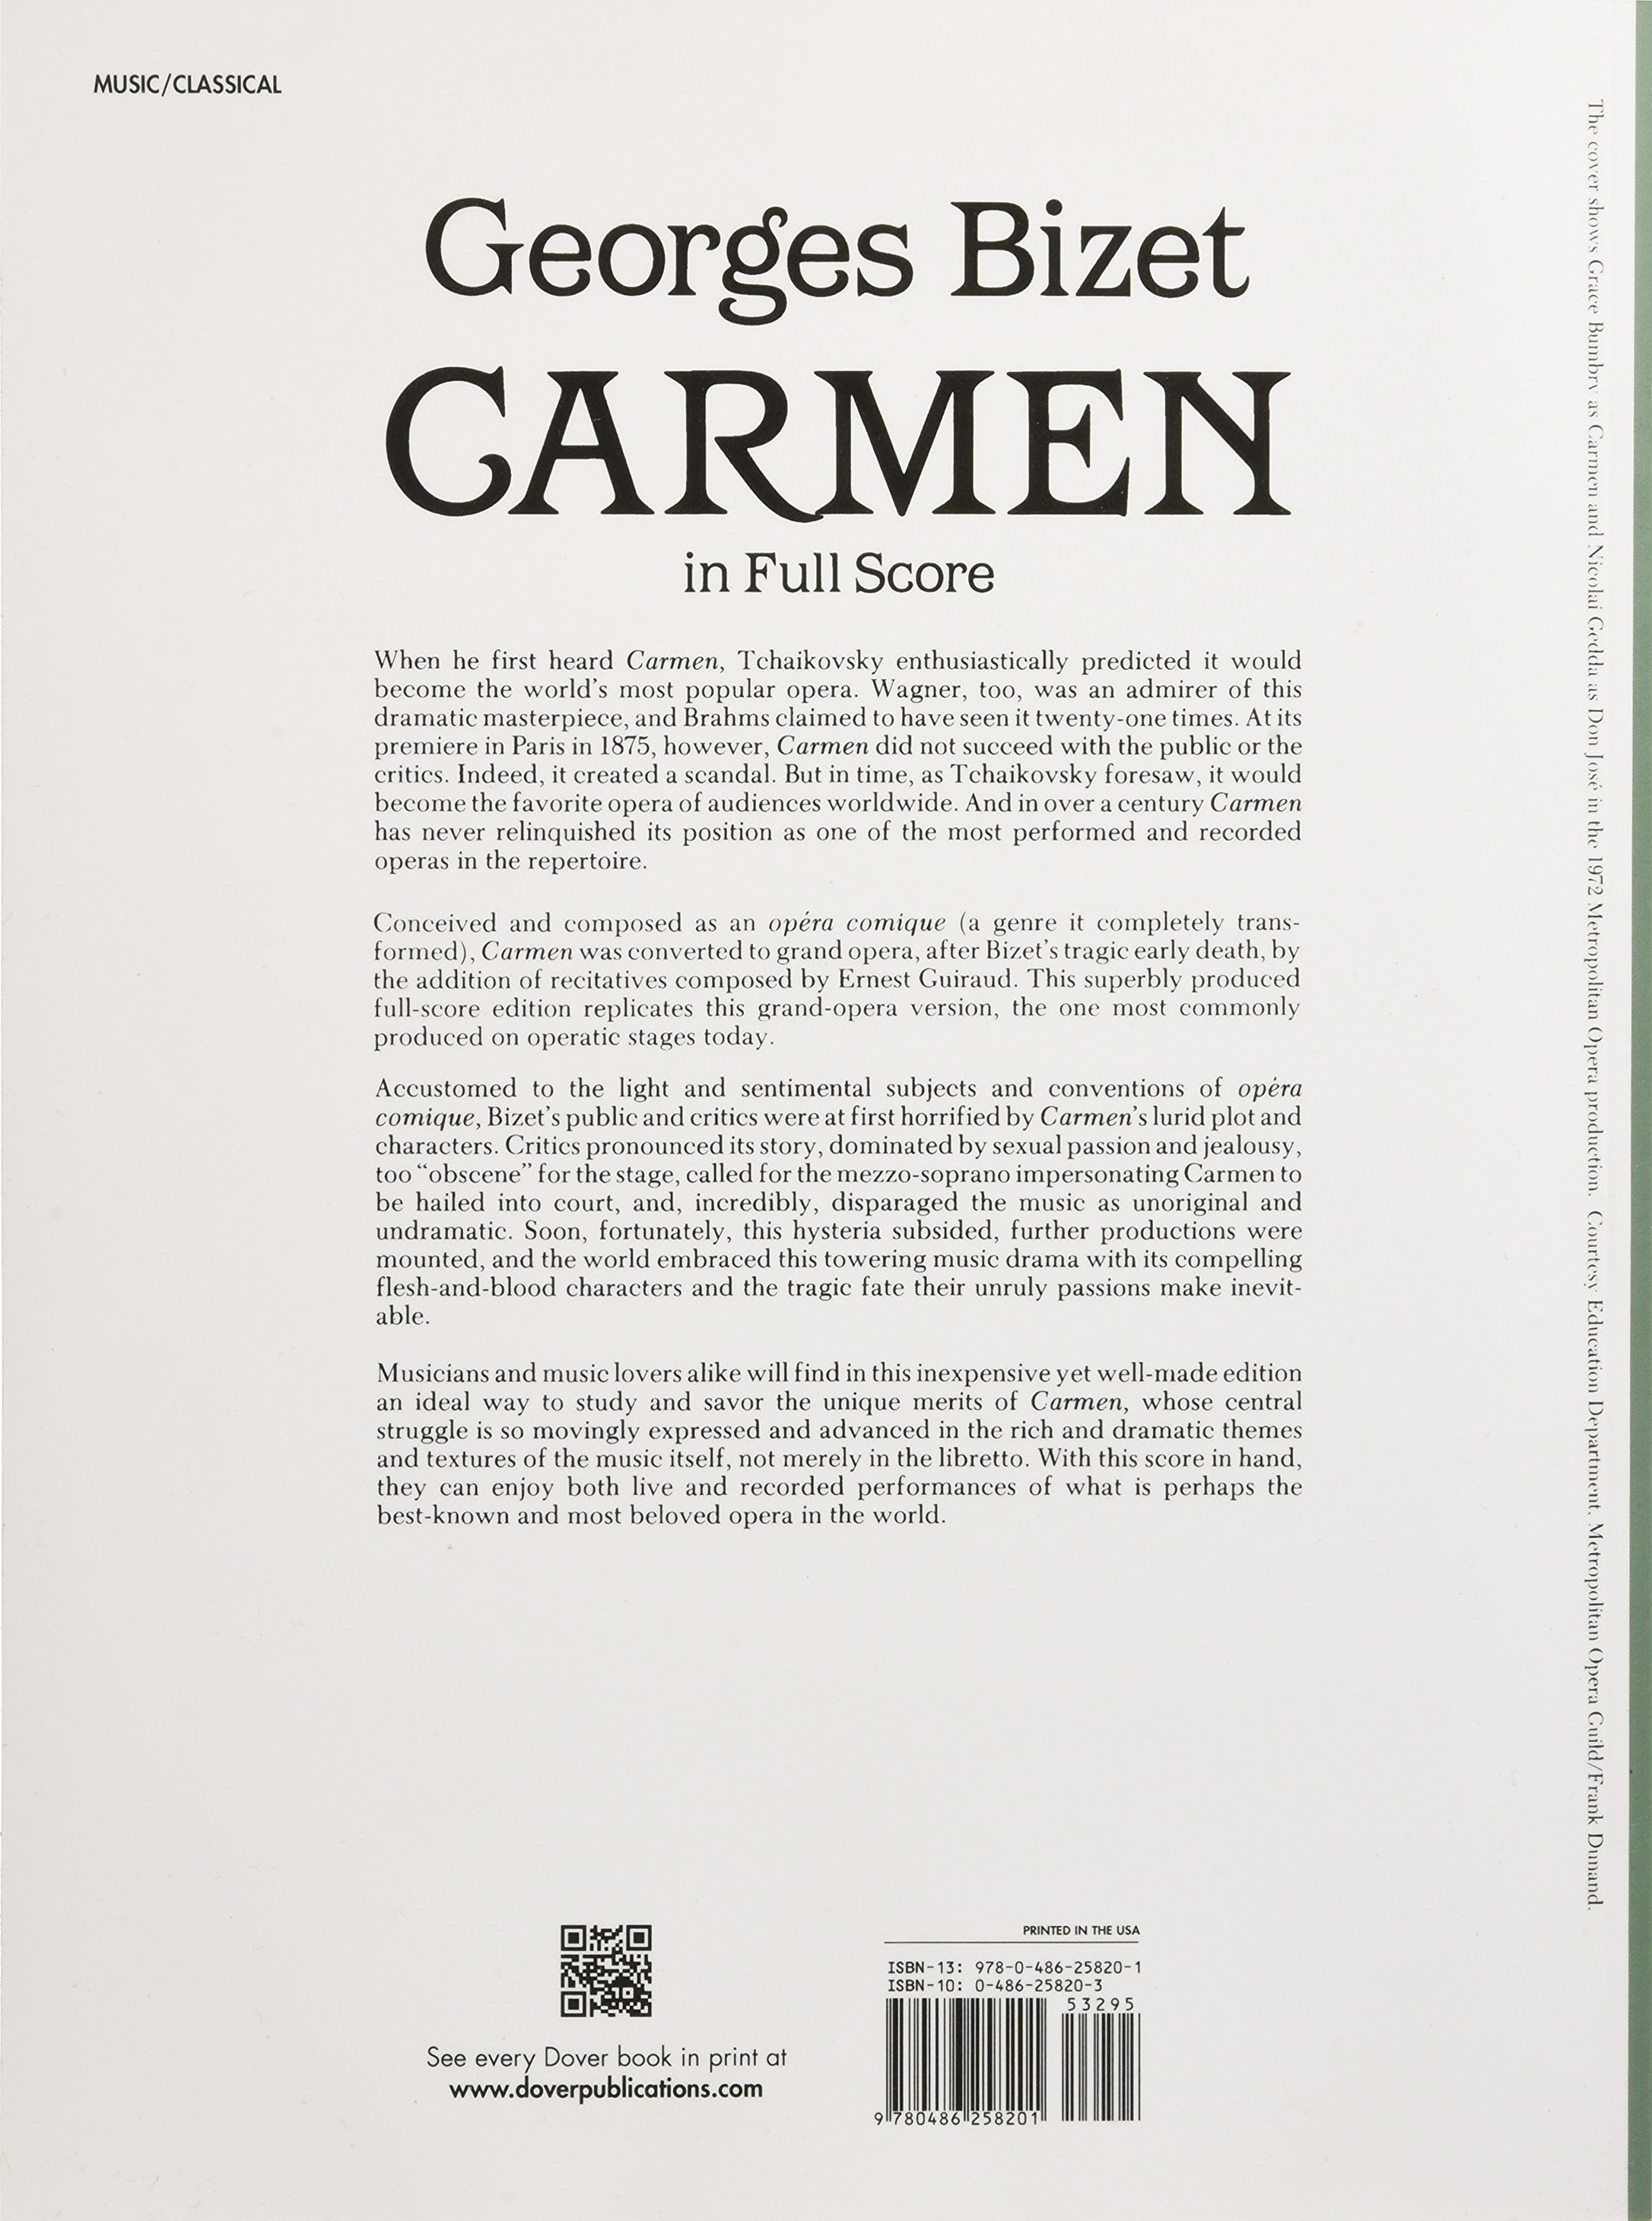 Carmen in Full Score (Dover Music Scores): Georges Bizet: 9780486258201:  Amazon.com: Books